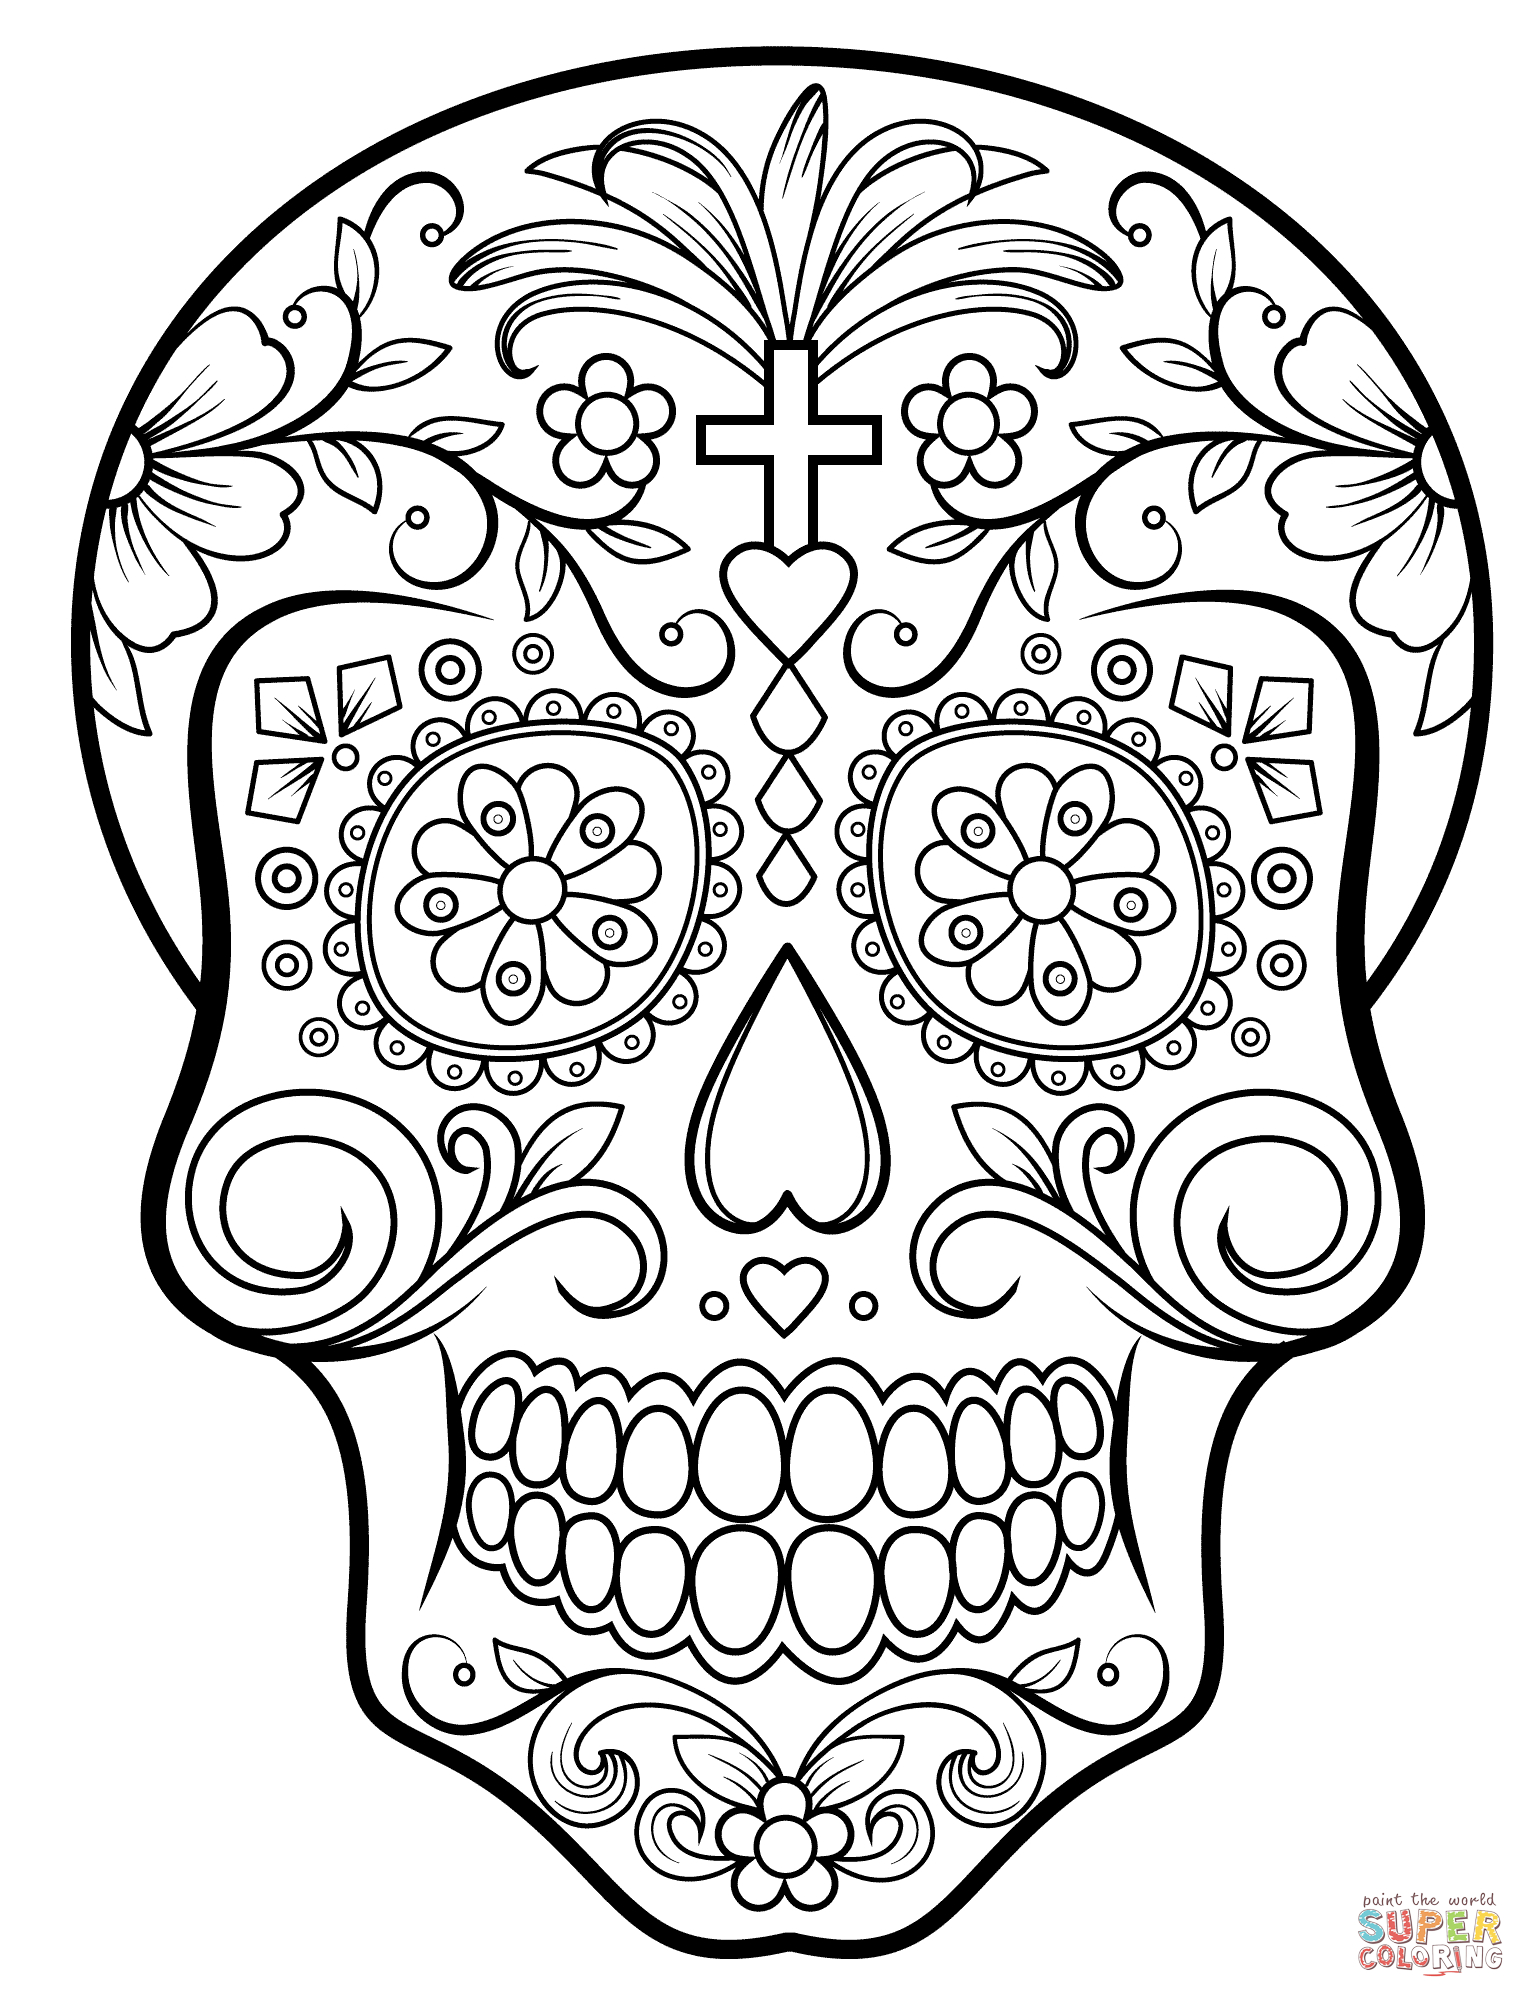 Sugar Skull Coloring Page   Free Printable Coloring Pages - Free Printable Day Of The Dead Coloring Pages